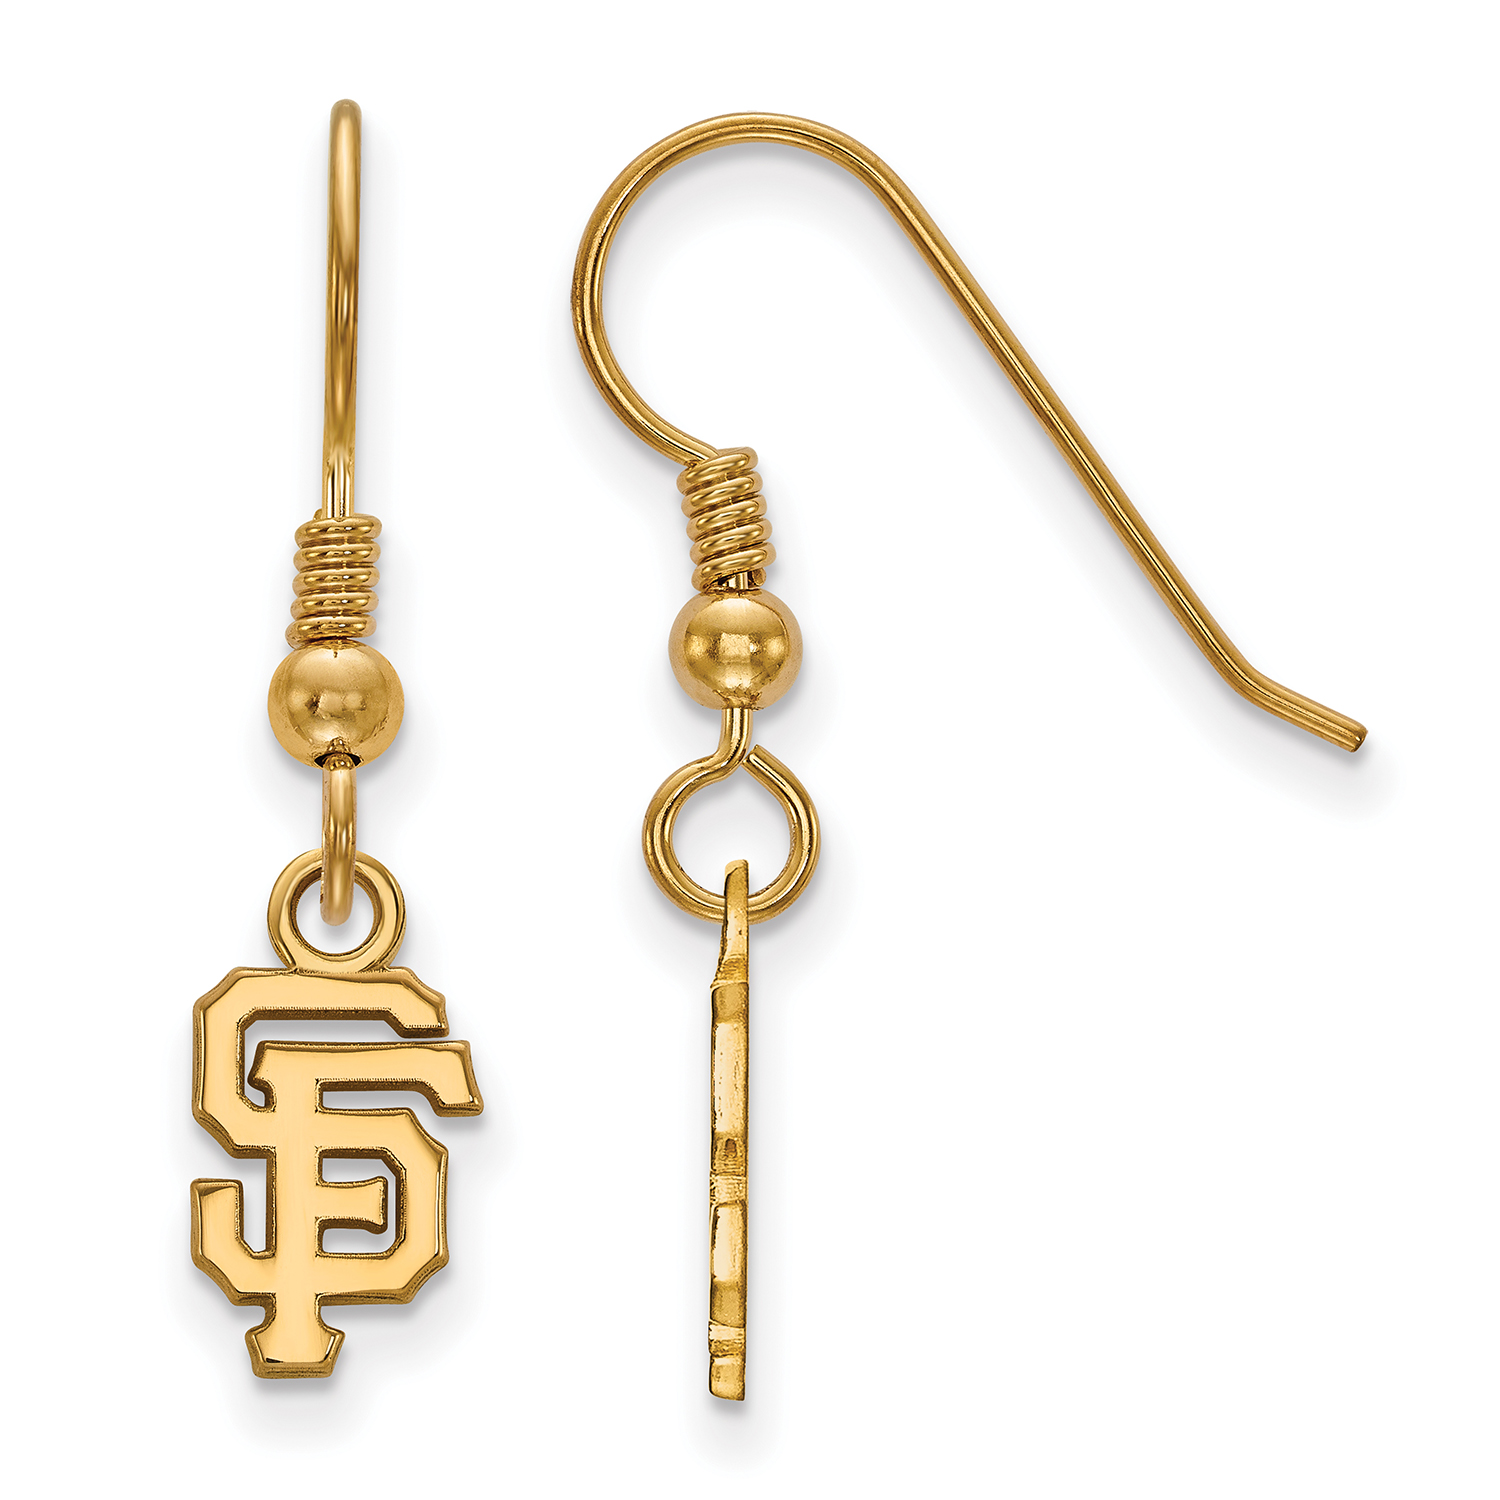 San Francisco Giants Women's Gold-Plated Sterling Silver Extra-Small Dangle Earrings - No Size